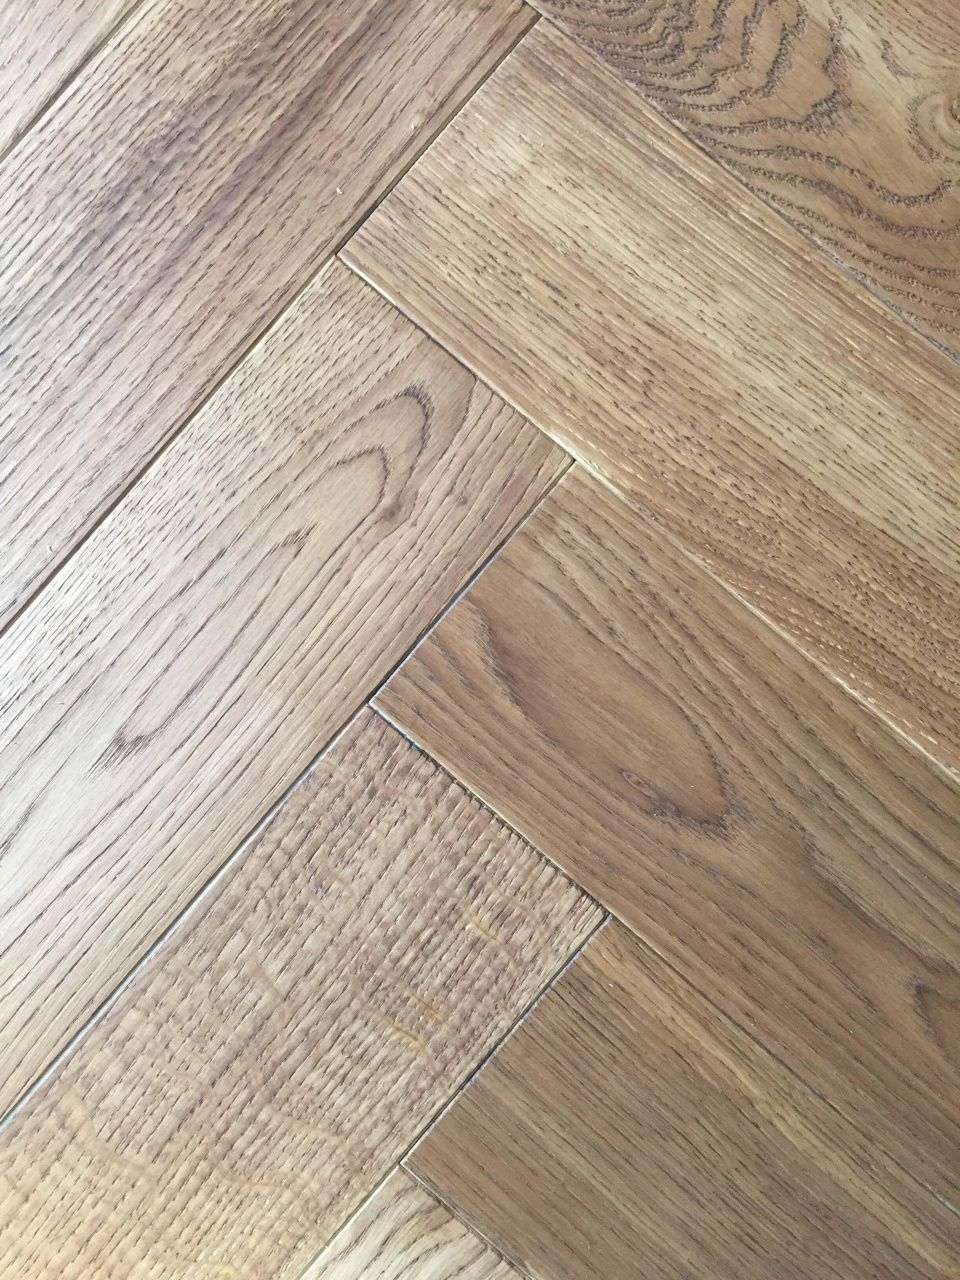 Shaw Engineered Hardwood Flooring